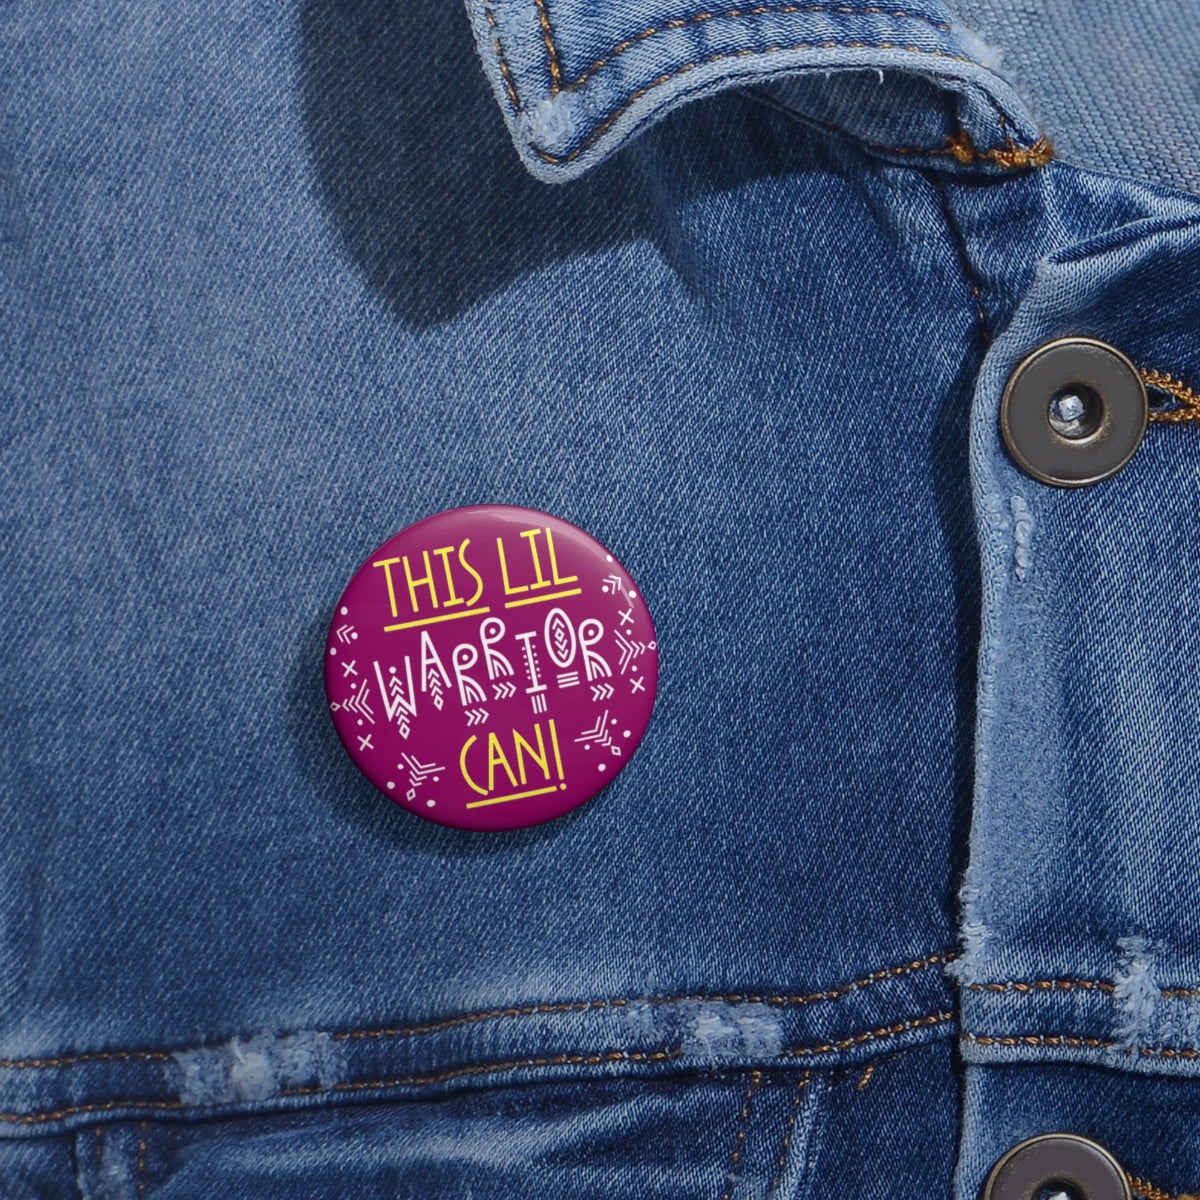 Pink Camo 'This Lil Warrior Can!' 3 Metal Pin Buttons - skyrockettees